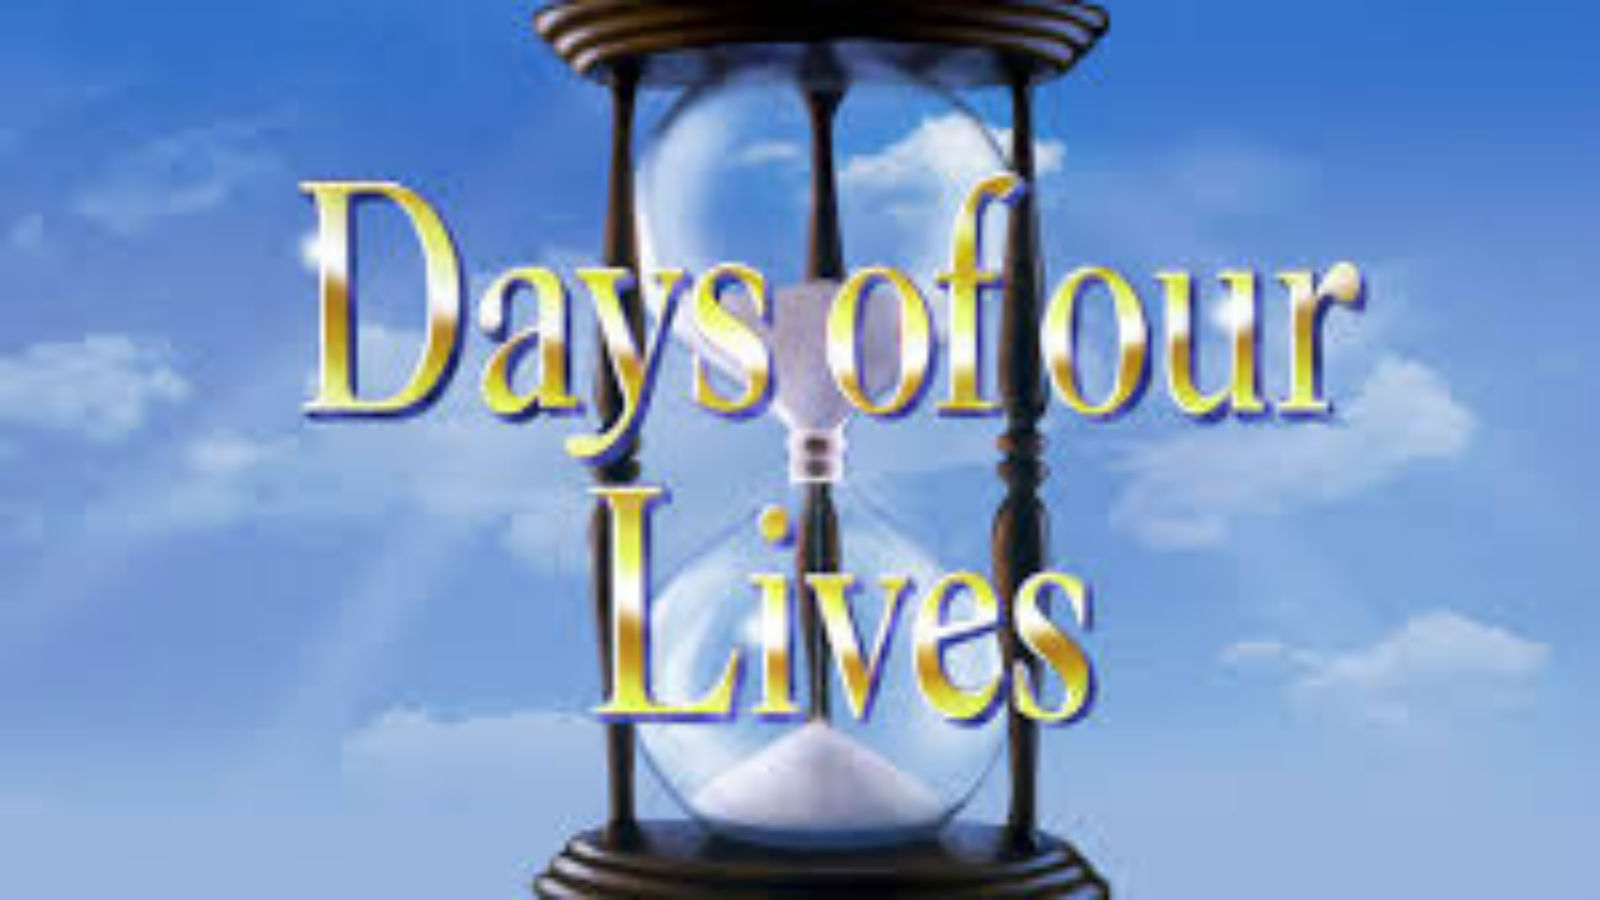 'Days of our Lives' Spoilers: Steve's poisoner revealed & you won't believe it